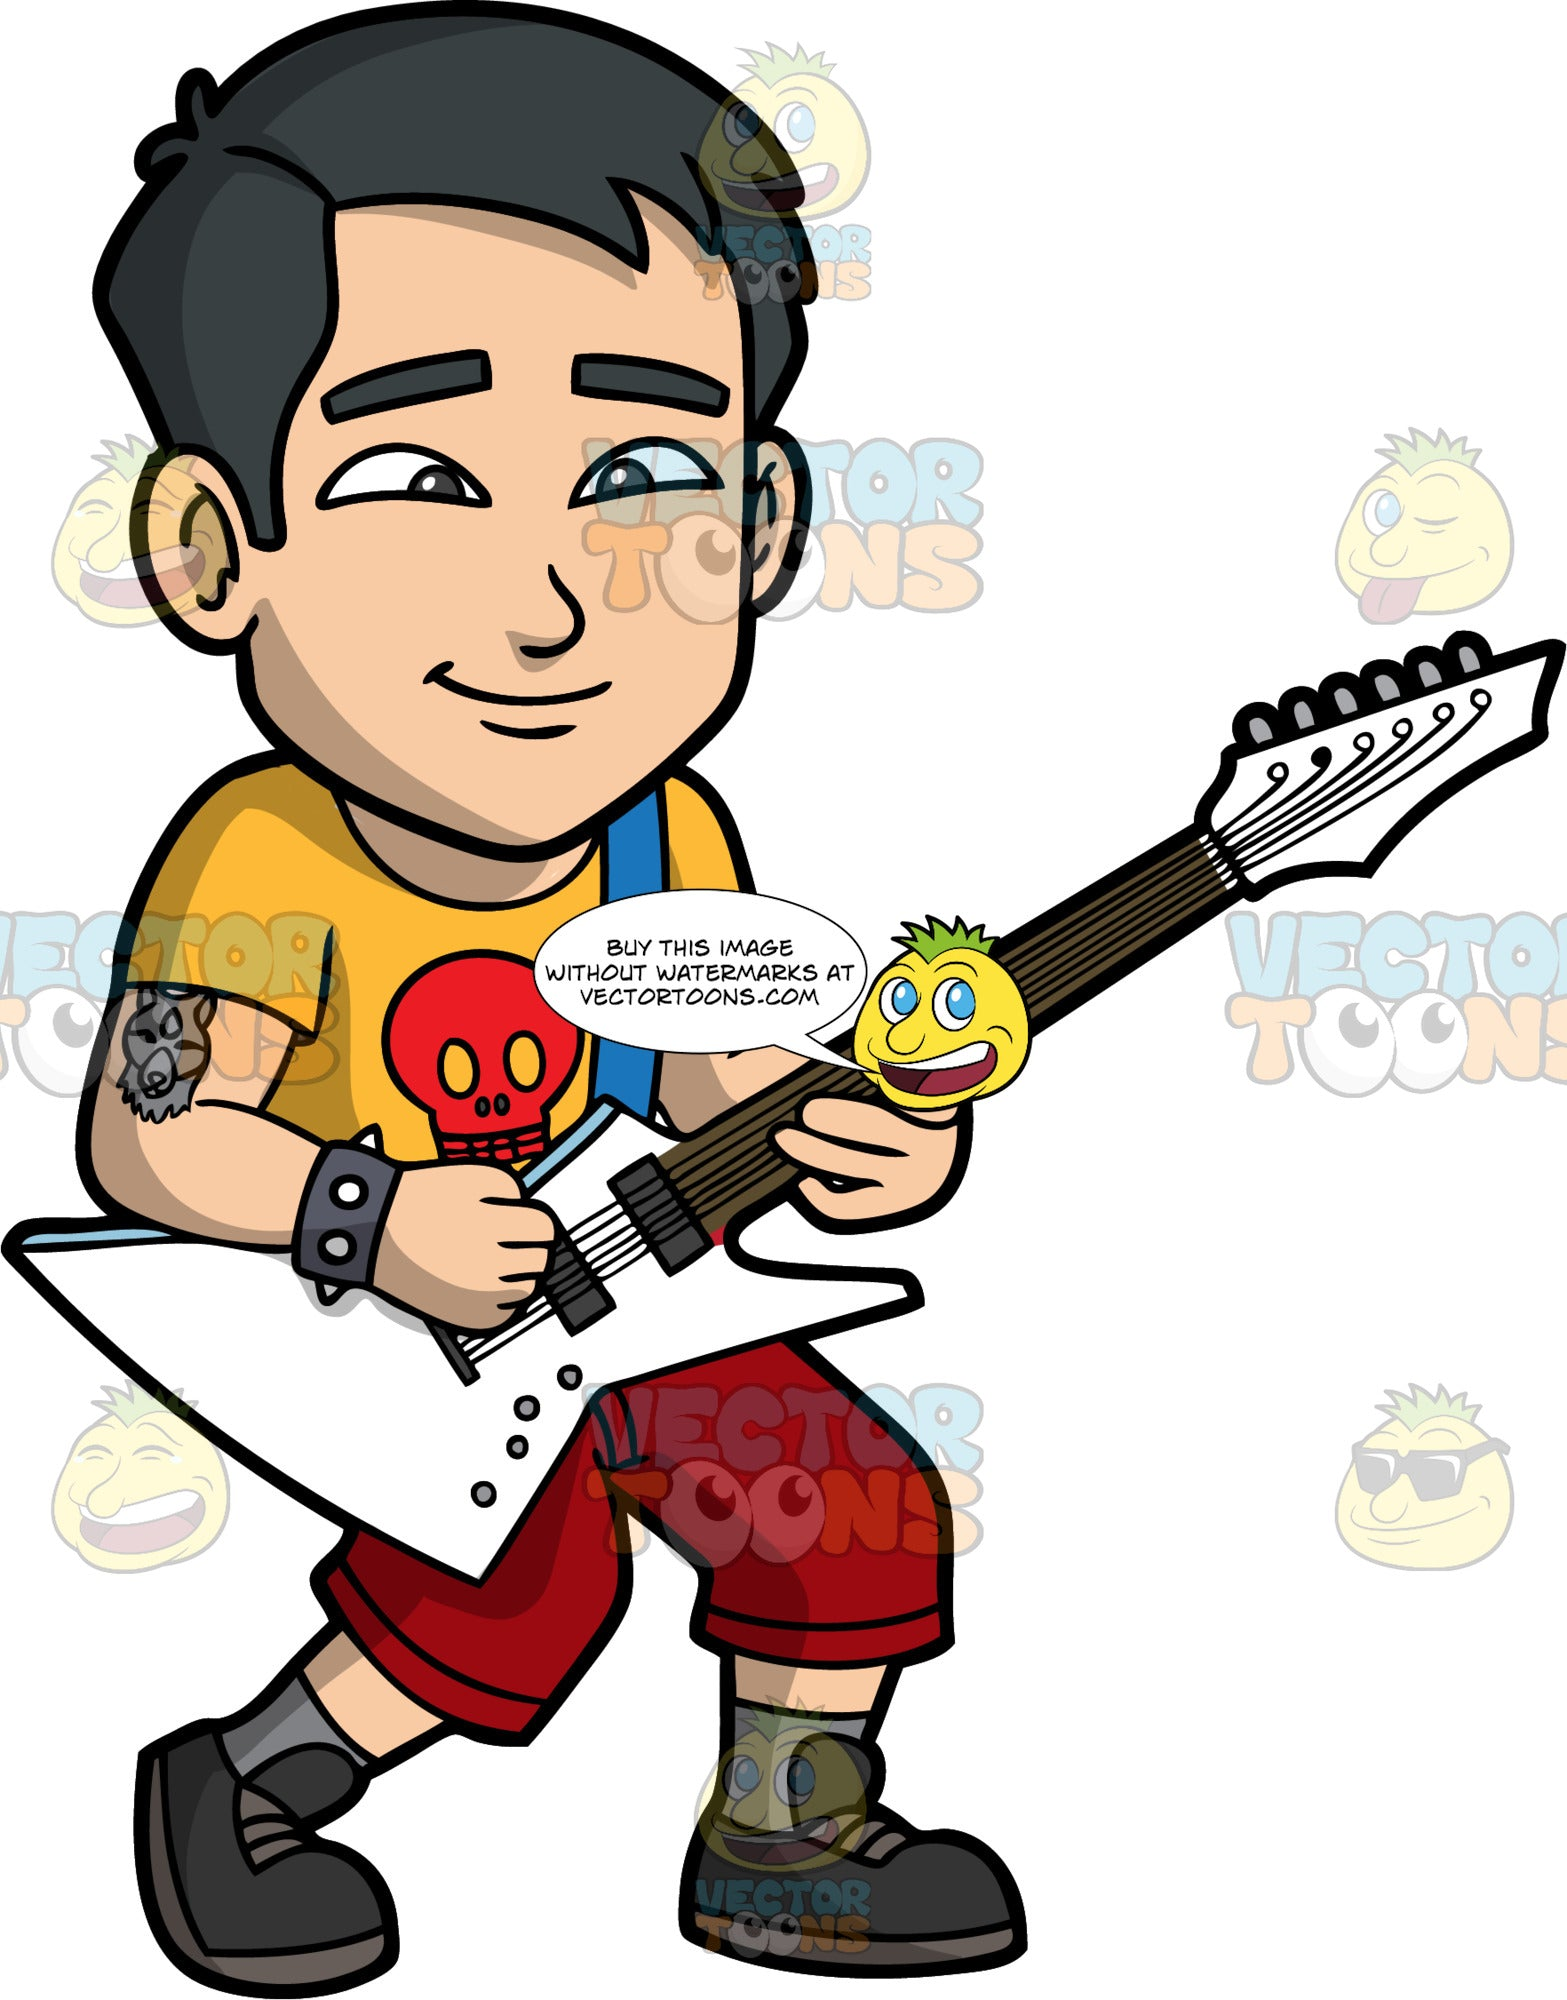 Kevin Playing Heavy Metal Music On An Electric Guitar. An Asian man with tattoo on his upper arm, wearing burgundy shorts, a yellow shirt with a red skull on it, and dark gray shoes, standing and playing a pointy electric guitar